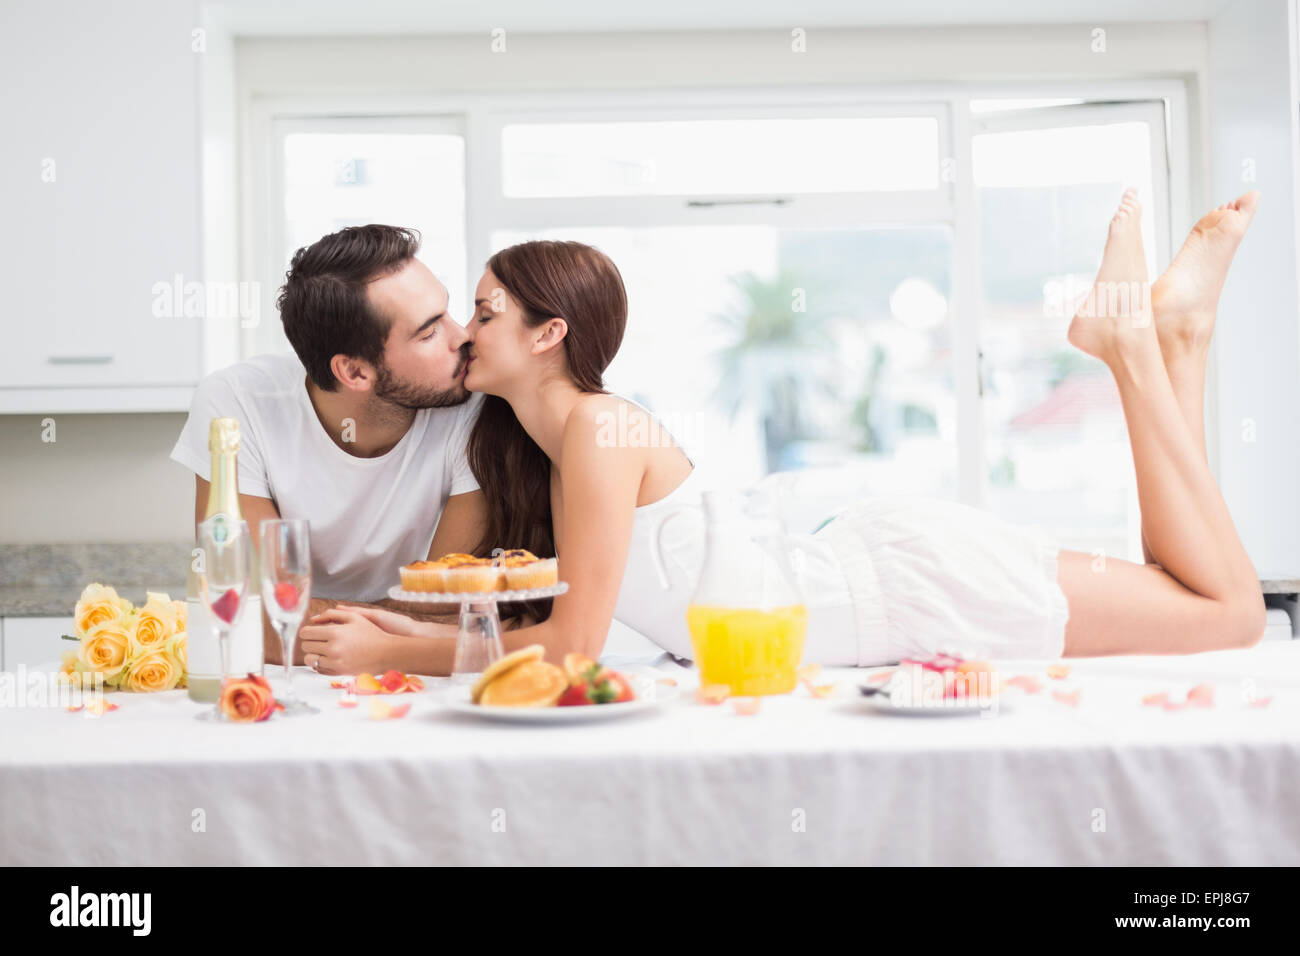 Young couple having a romantic breakfast - Stock Image